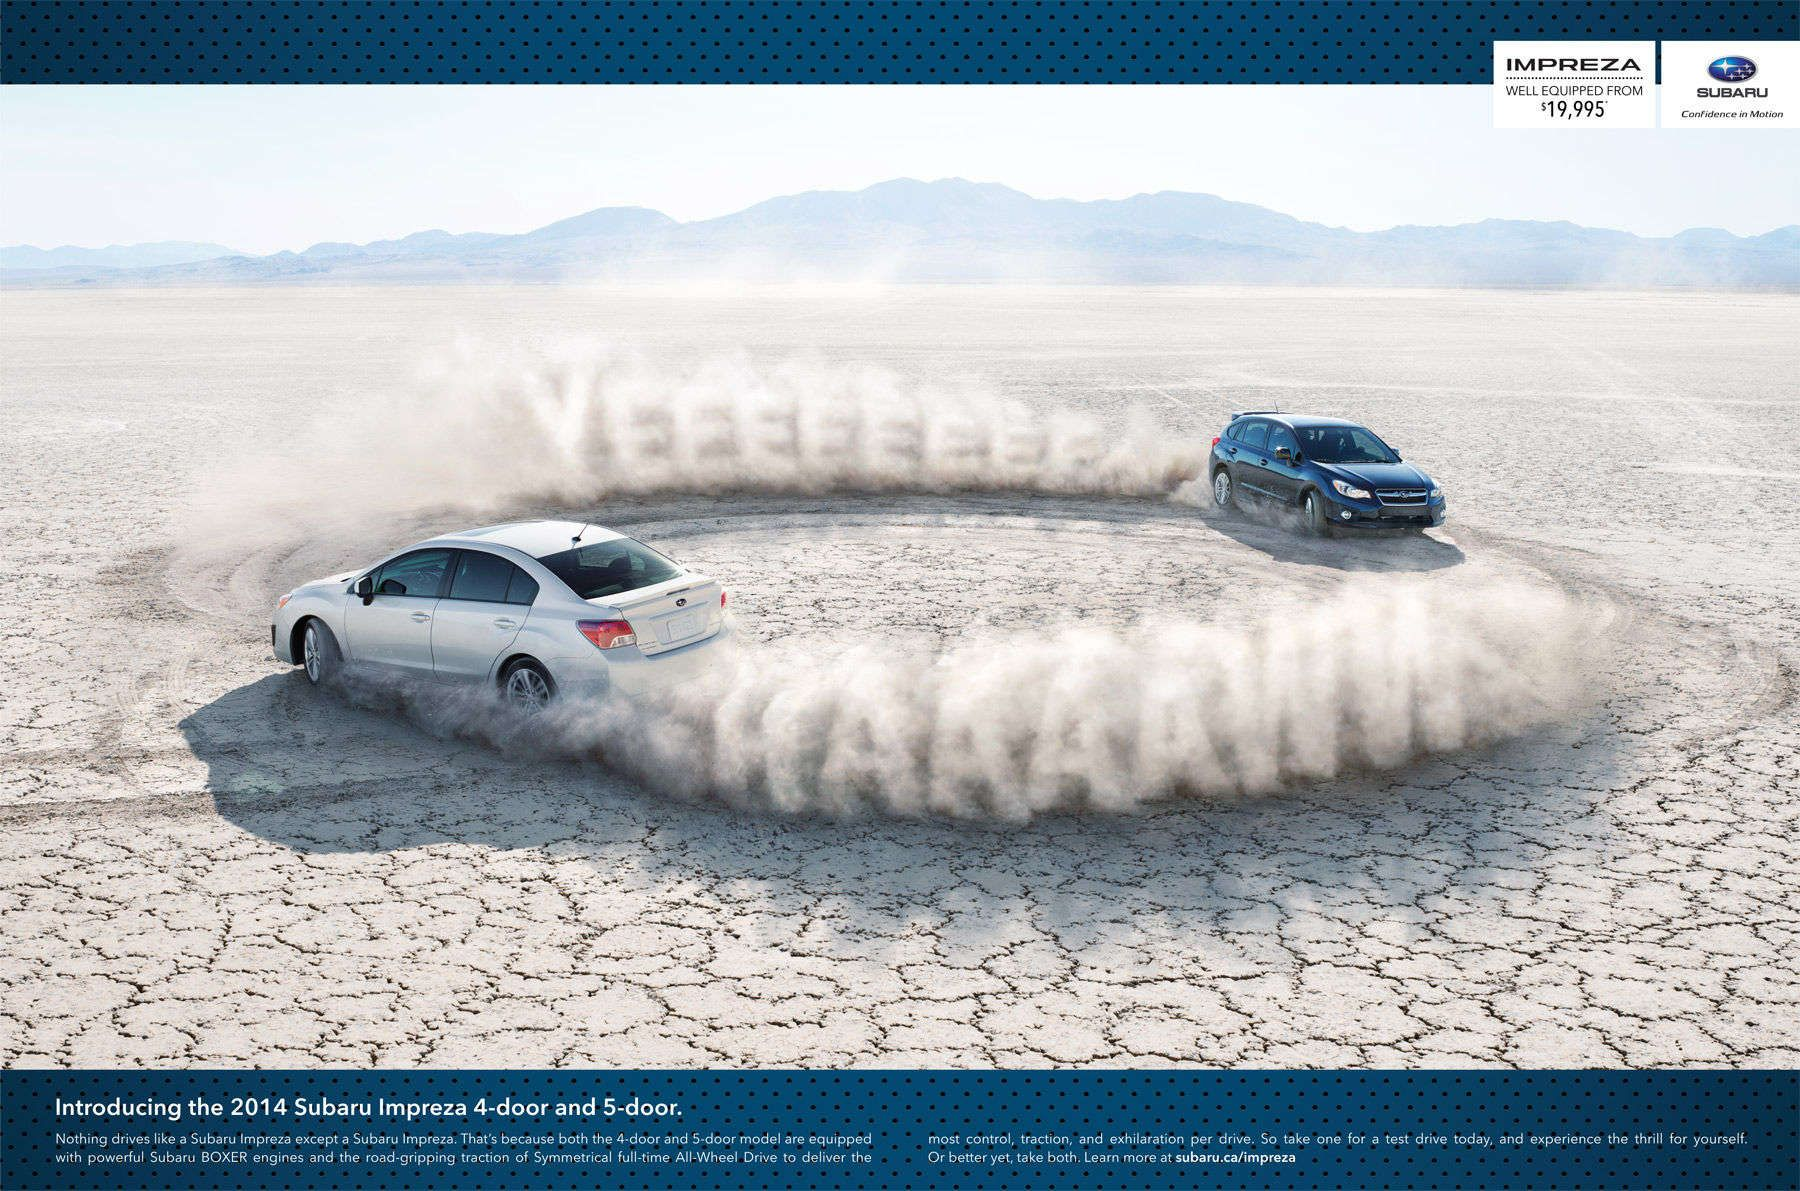 Client > Subaru / Agency > DDB, Paul Riss / Post > Taylor James